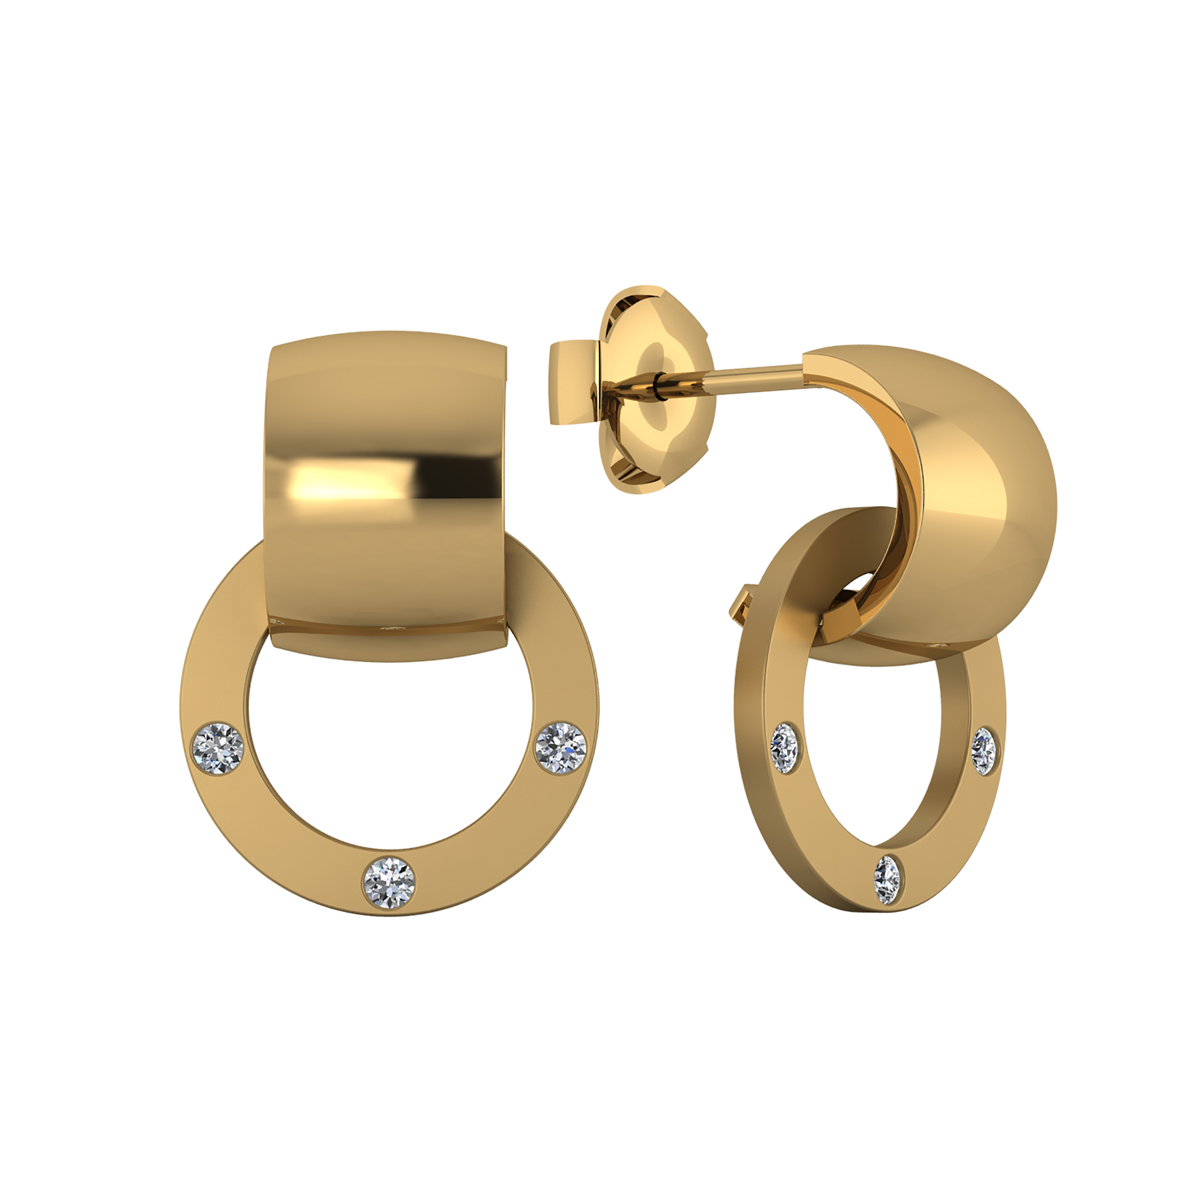 Clem+¿ncia Peris P011_EARRINGS B copia